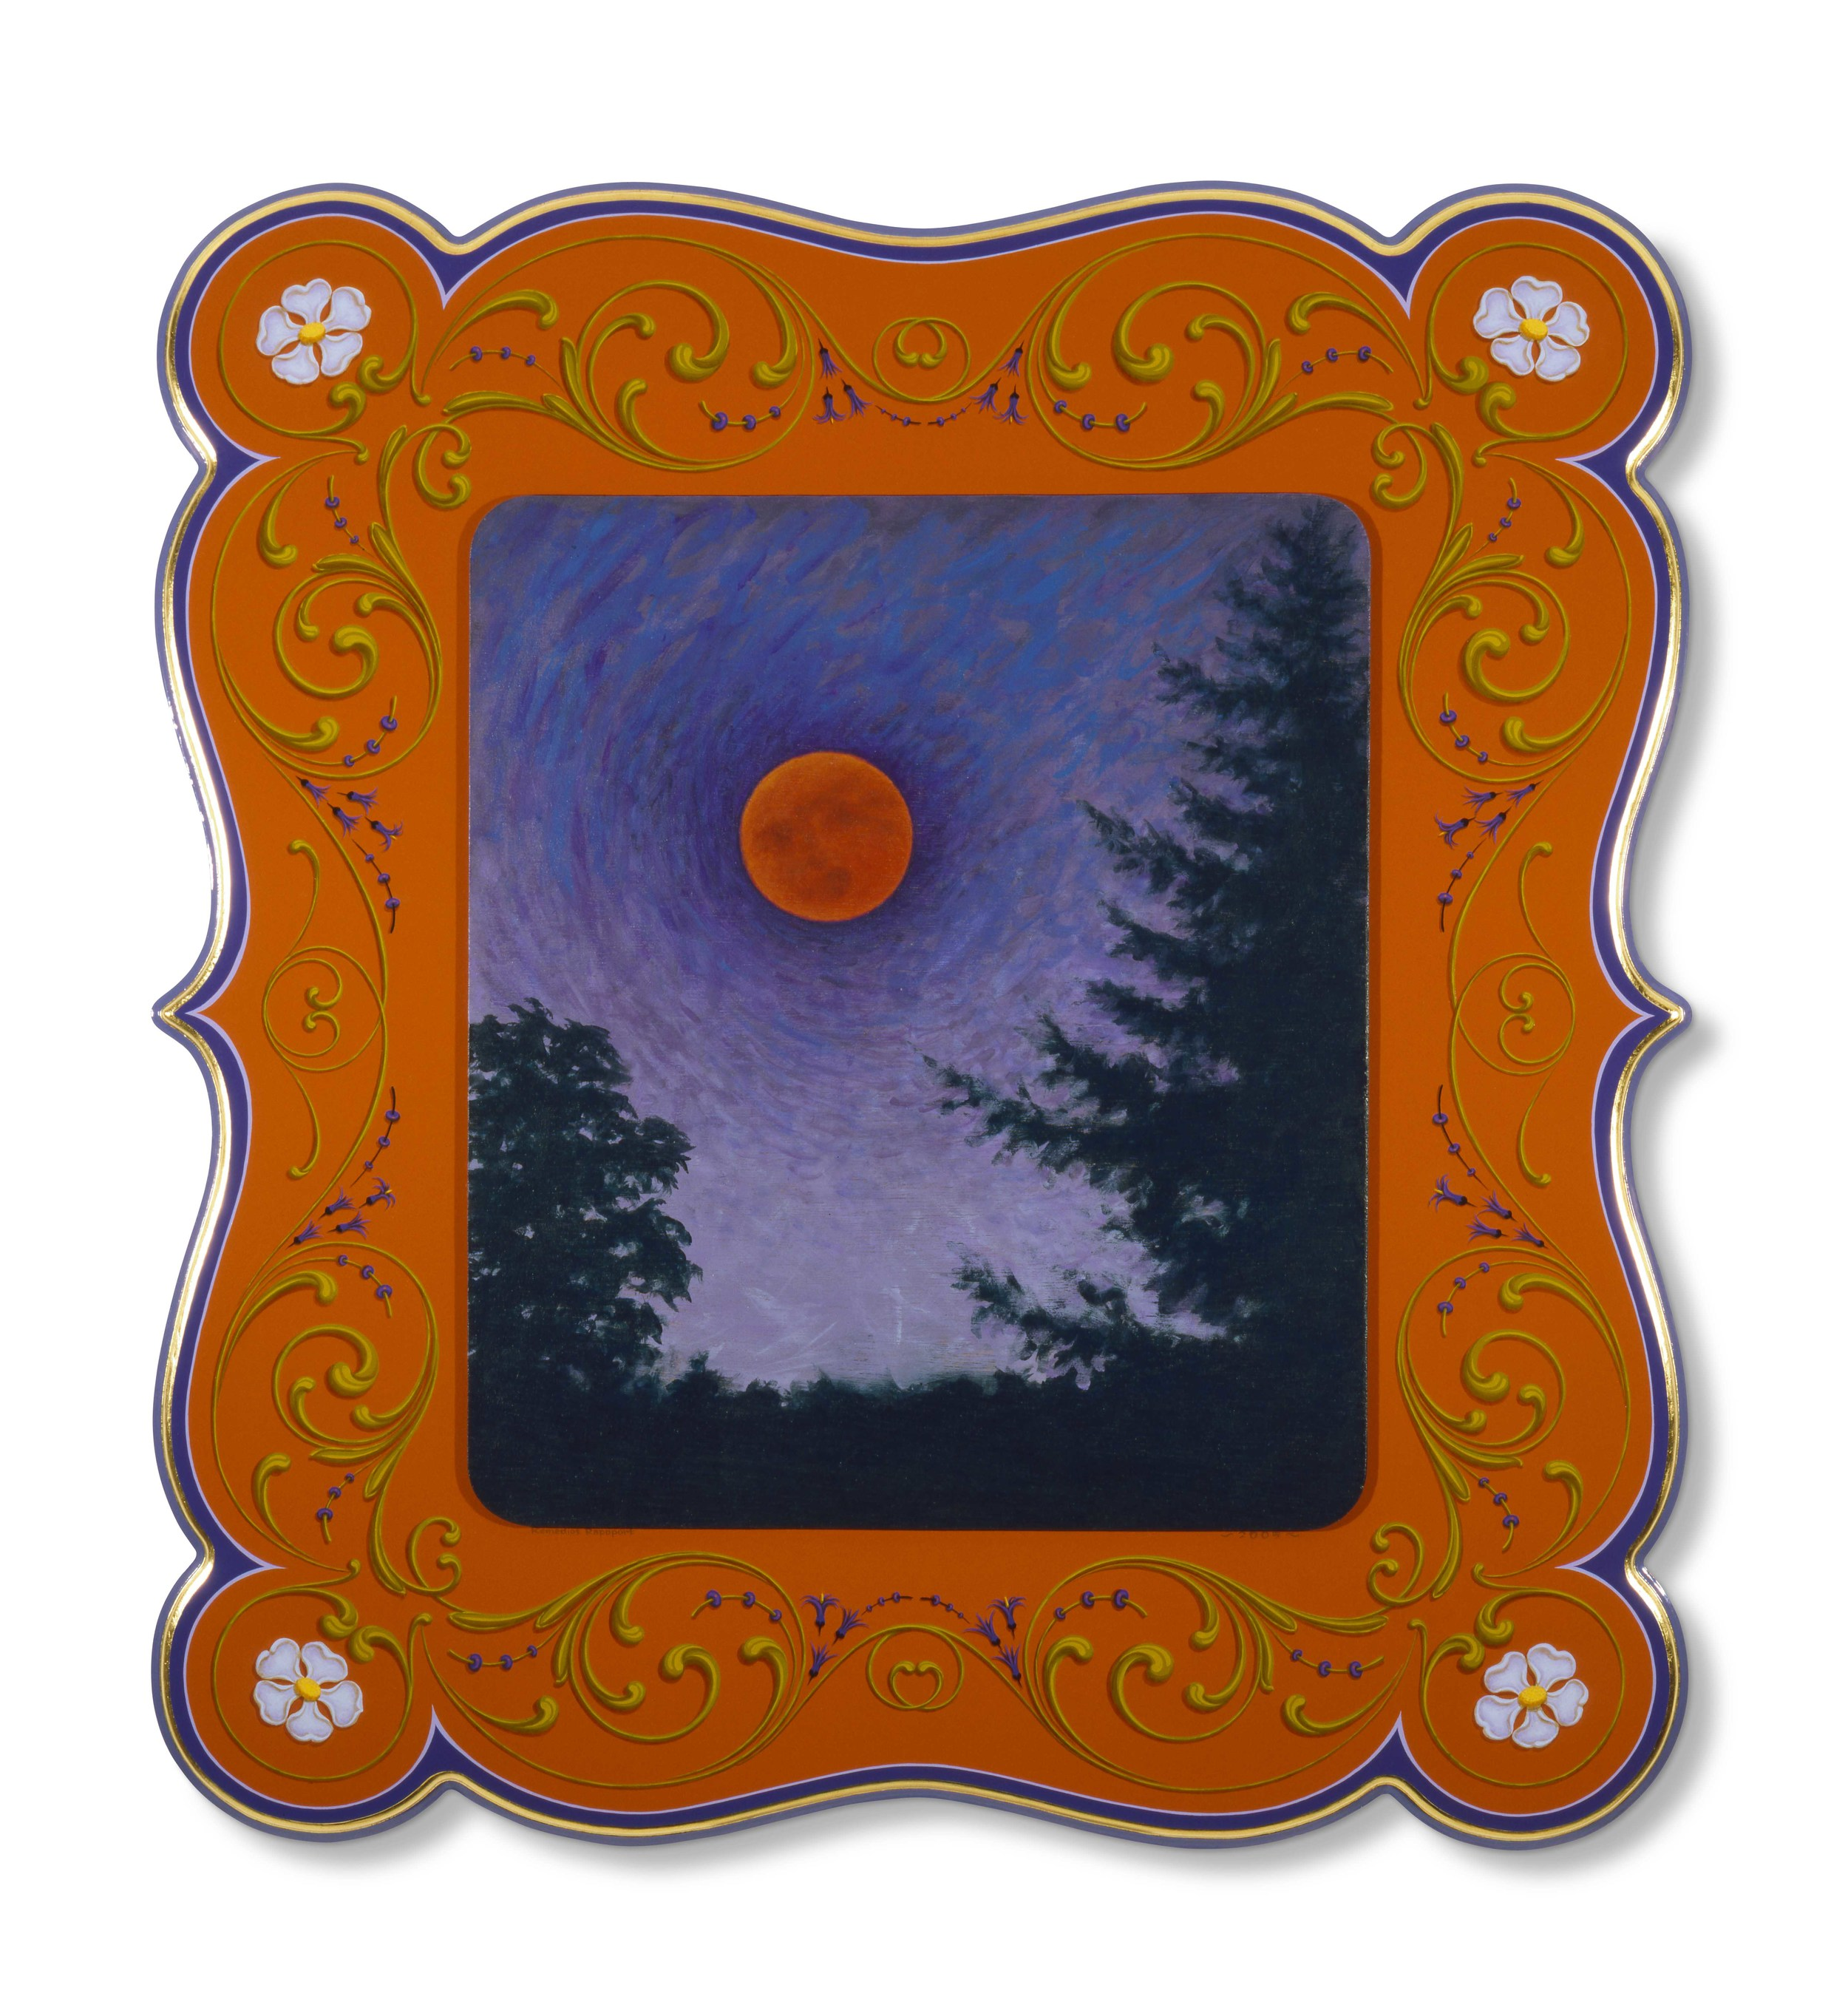 "Total Eclipse   2005, Oil alkyd painting on  wood panels with 23k gilding  30"" x 26"" x 1.5"""